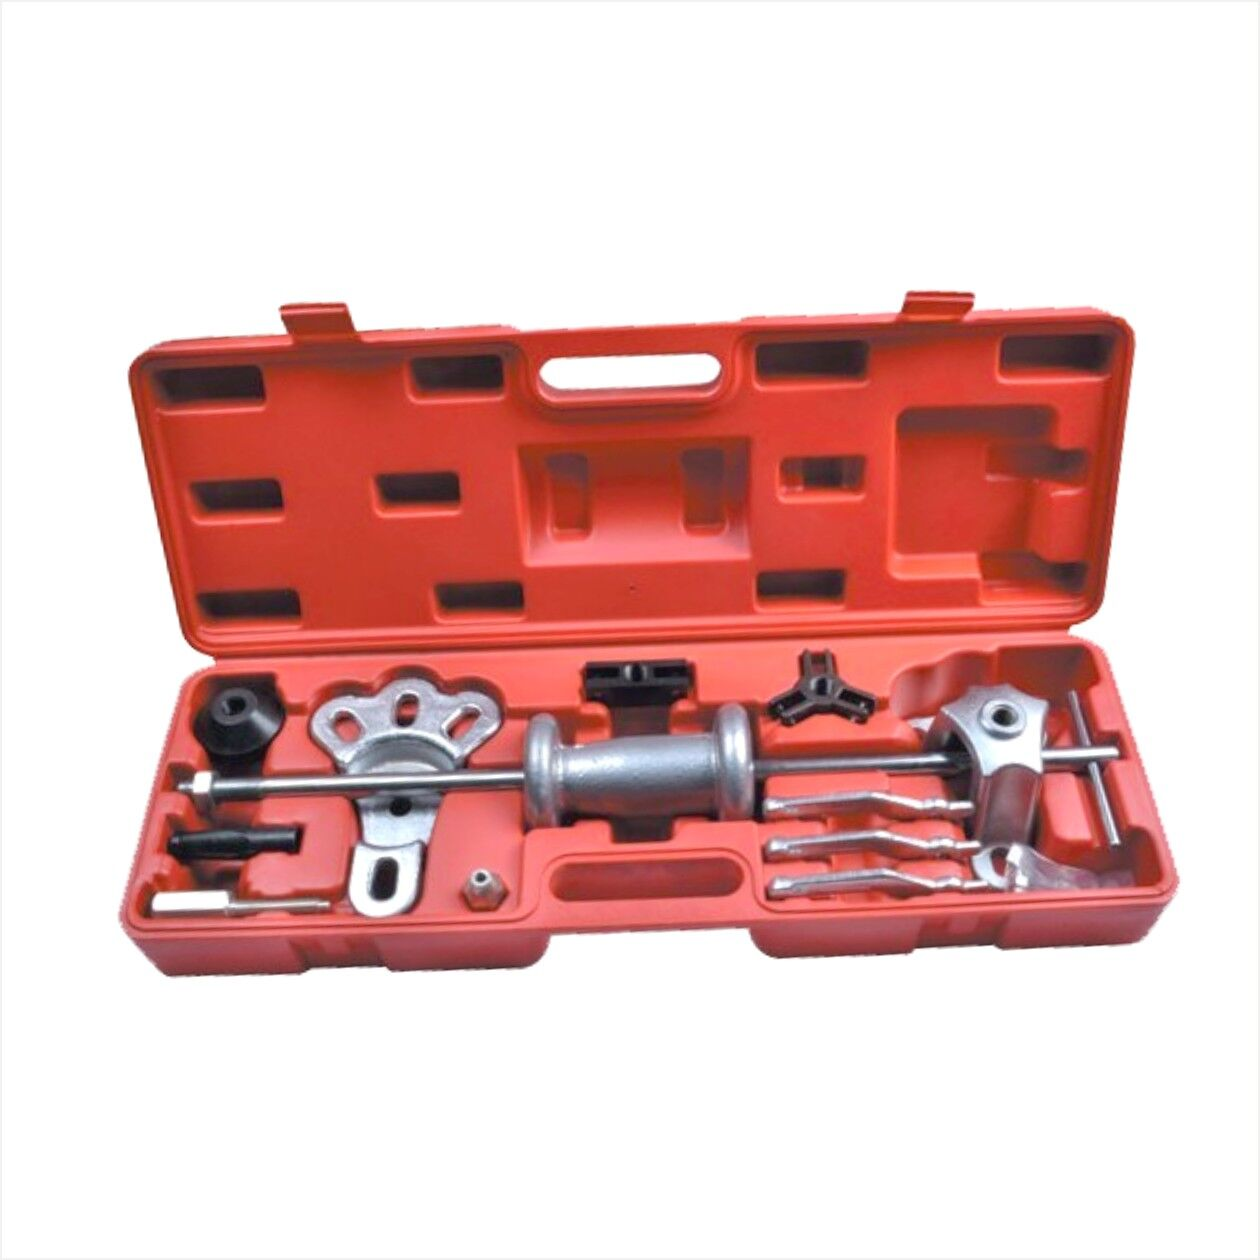 Axles Slide Hammer Puller Set 2/3 Jaw Internal/External Puller Bearing Remover Tool